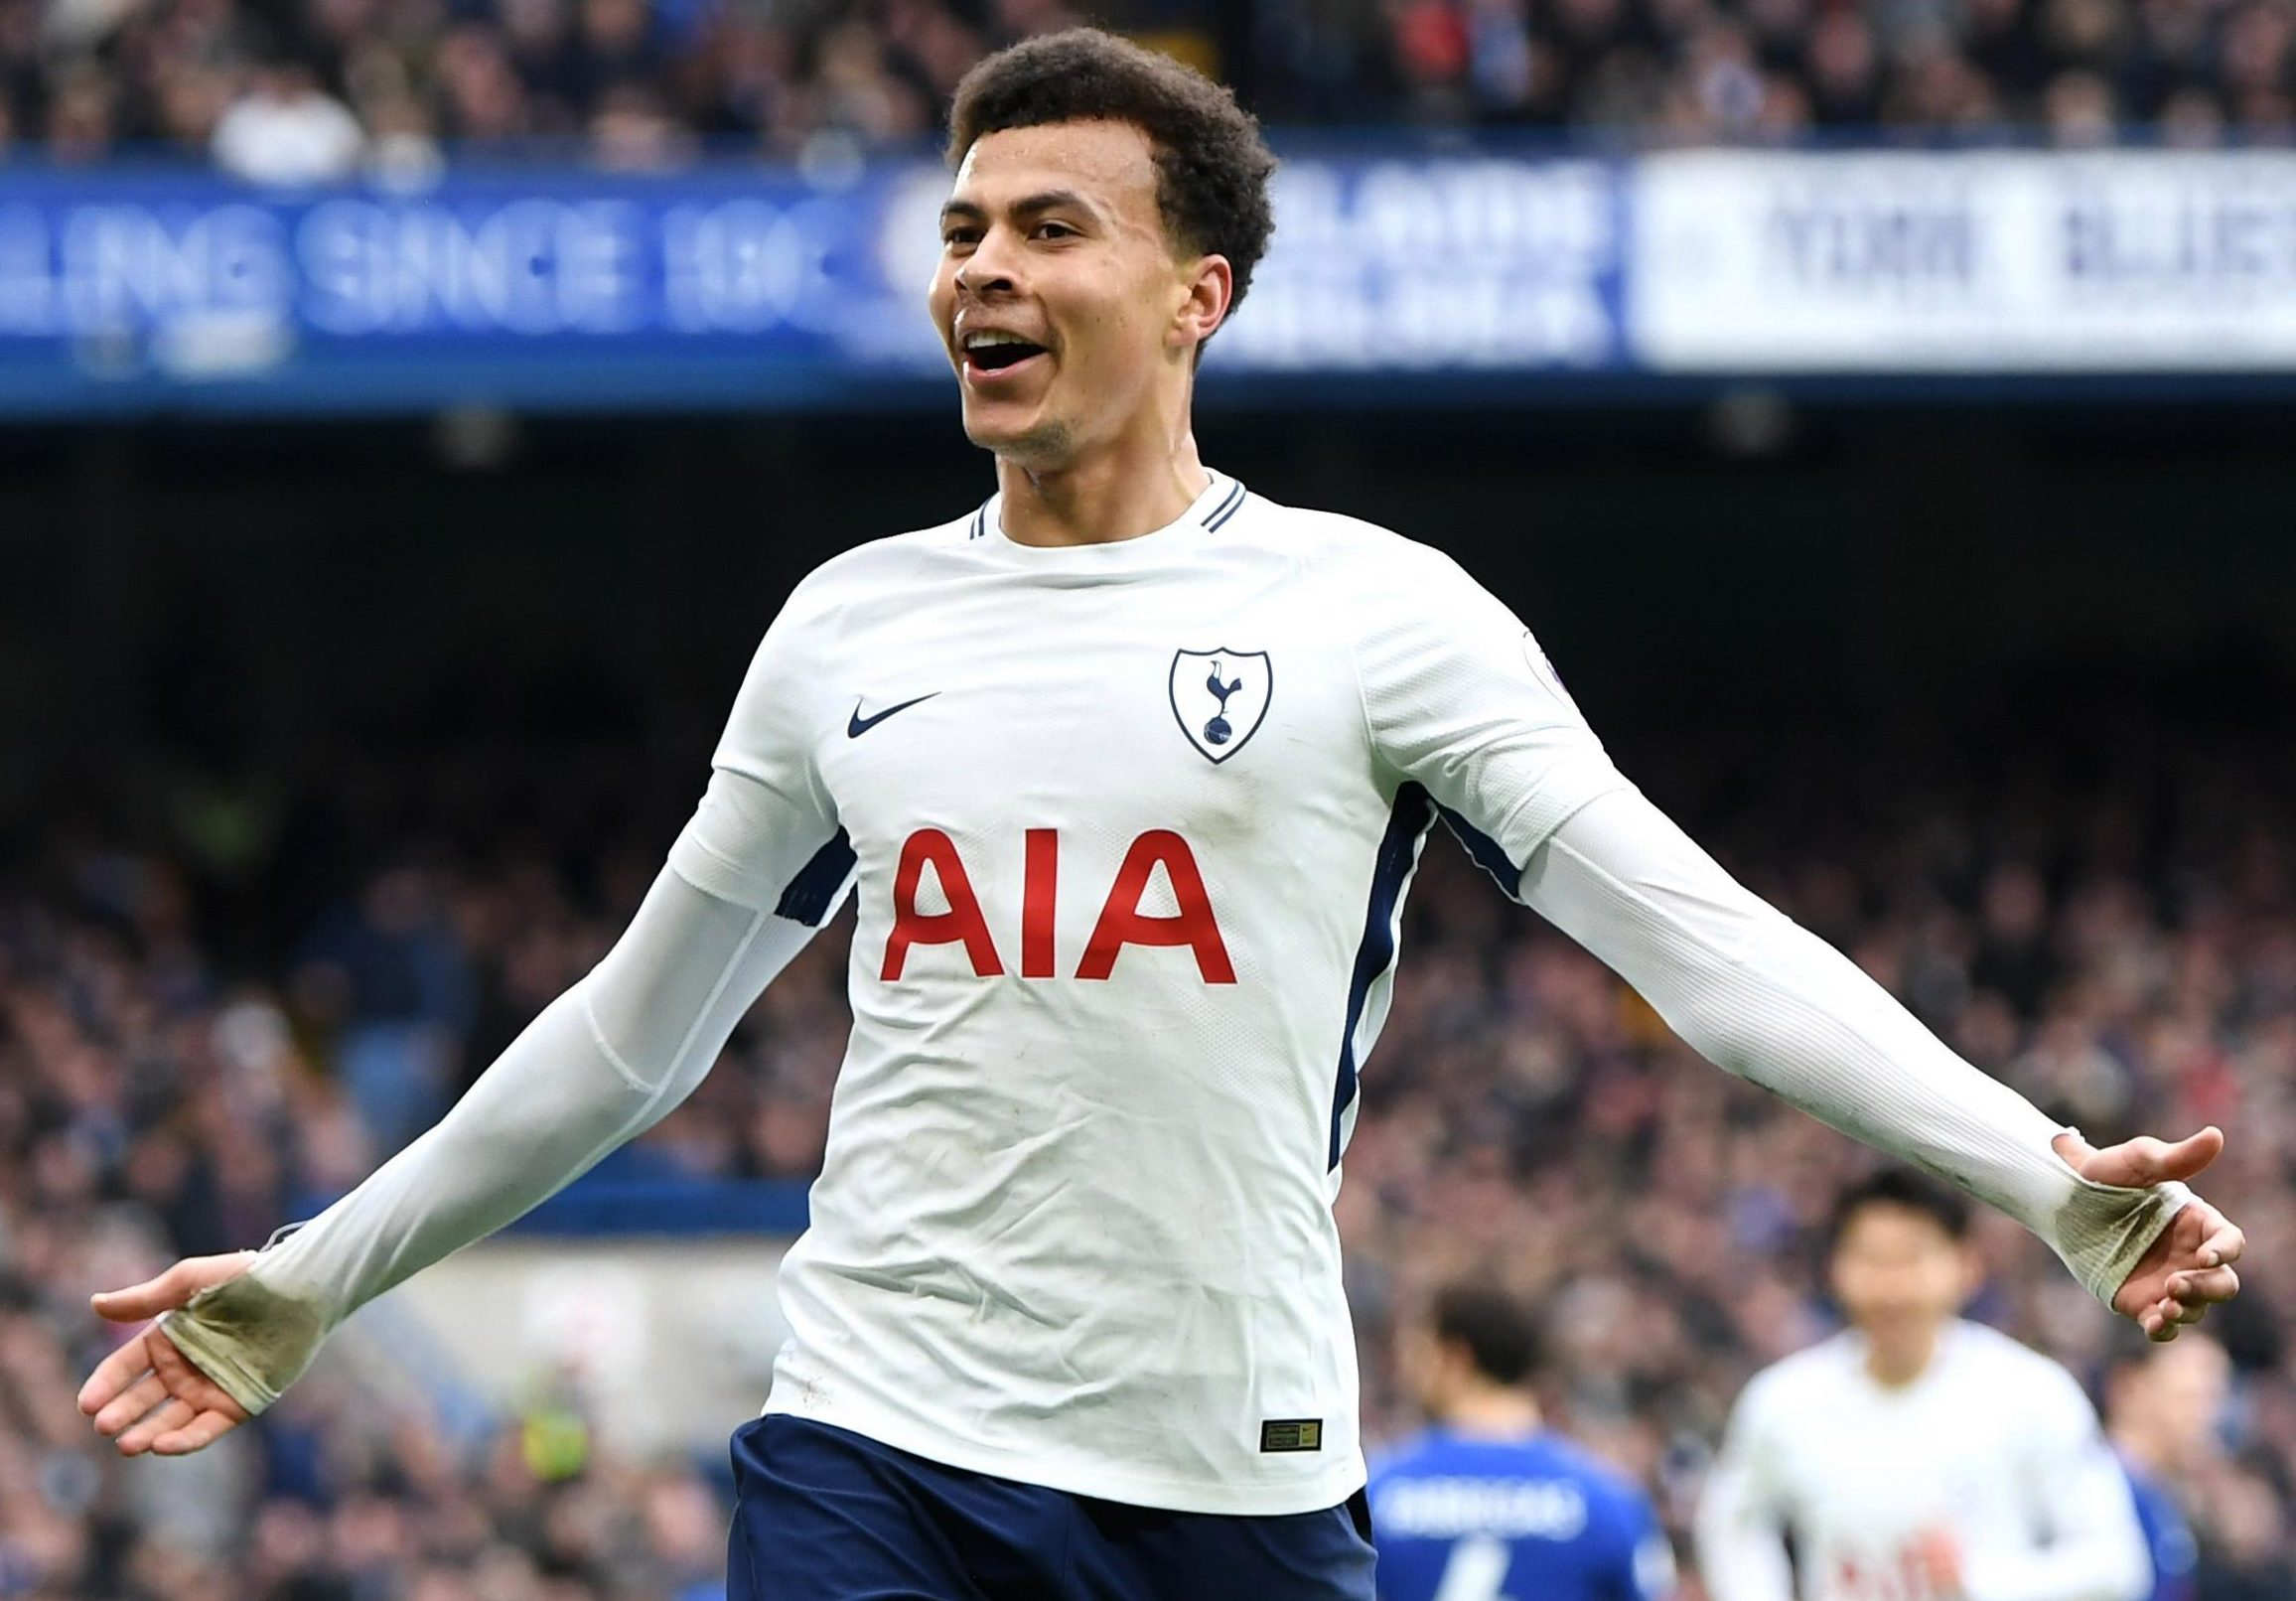 Dele Alli destroyed Chelsea with a double as Spurs came from behind to end their 28-year jinx at Stamford Bridge